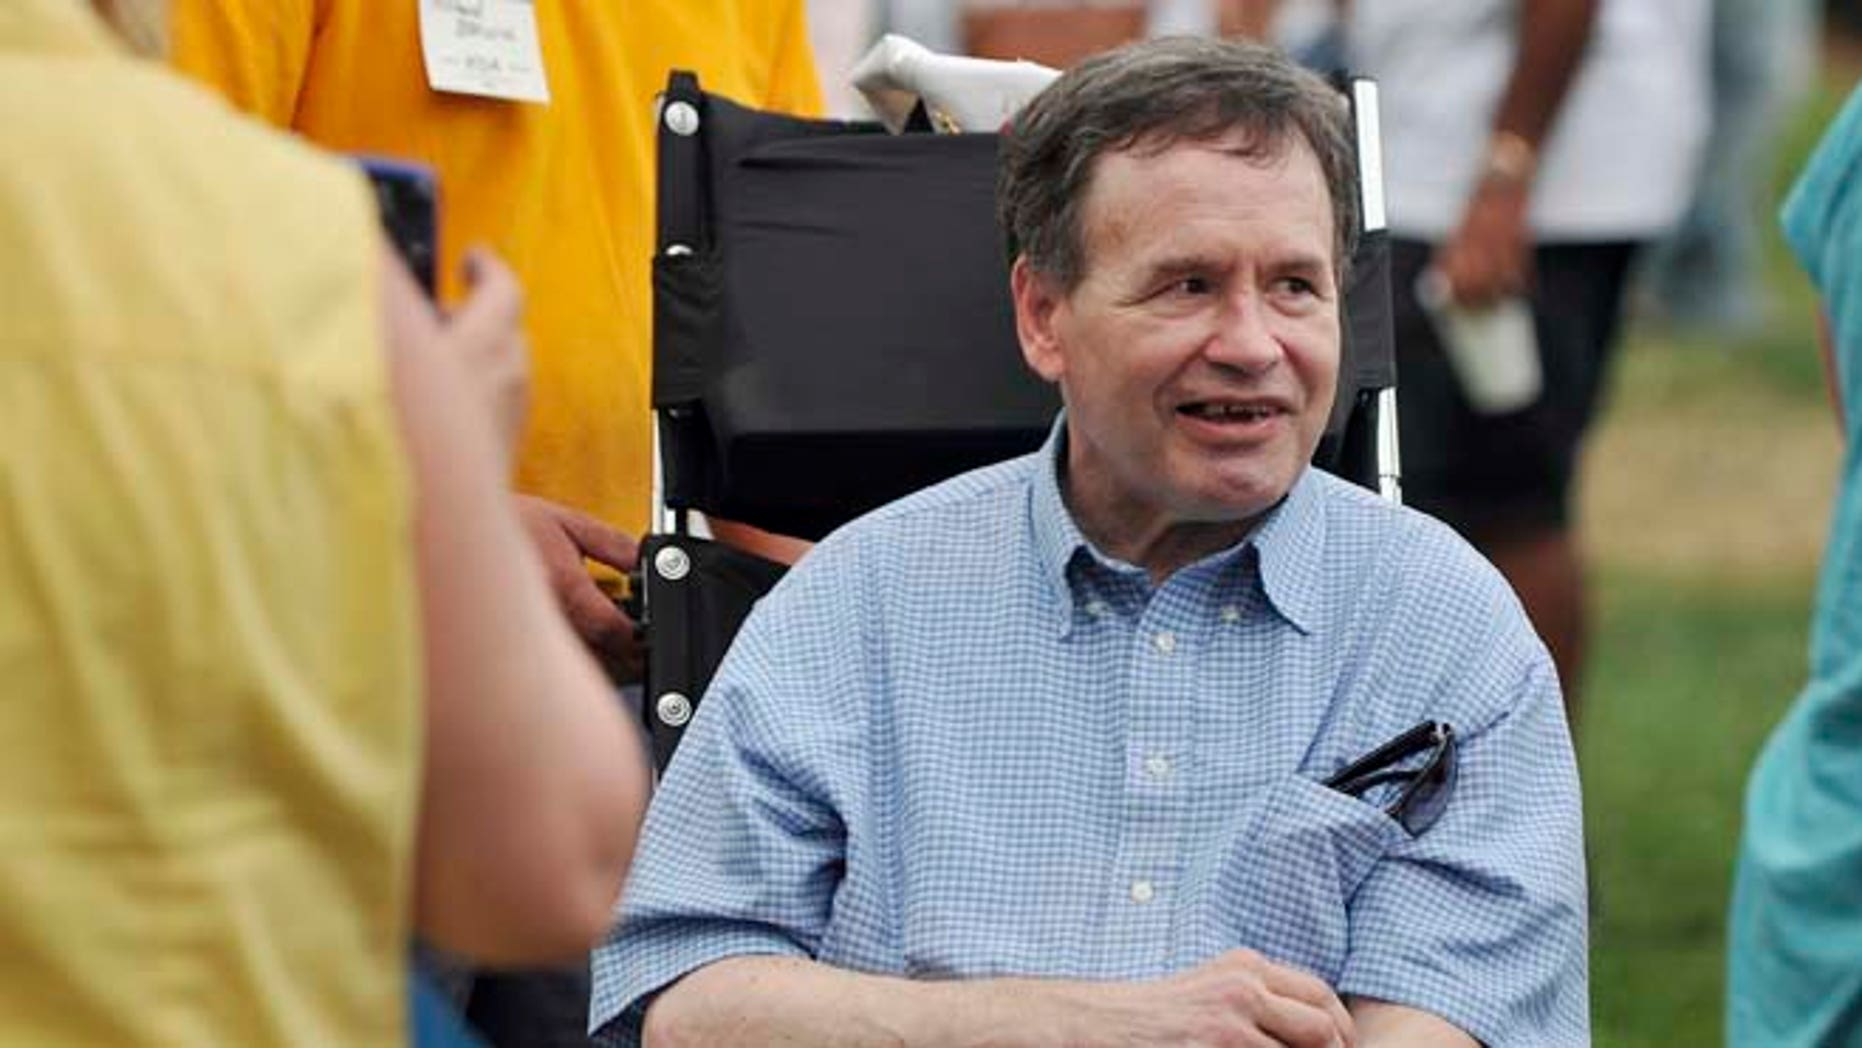 This Aug. 12, 2012 photo shows former Illinois Congressman Lane Evans in Davenport, Iowa, during a visit by President Barack Obama.